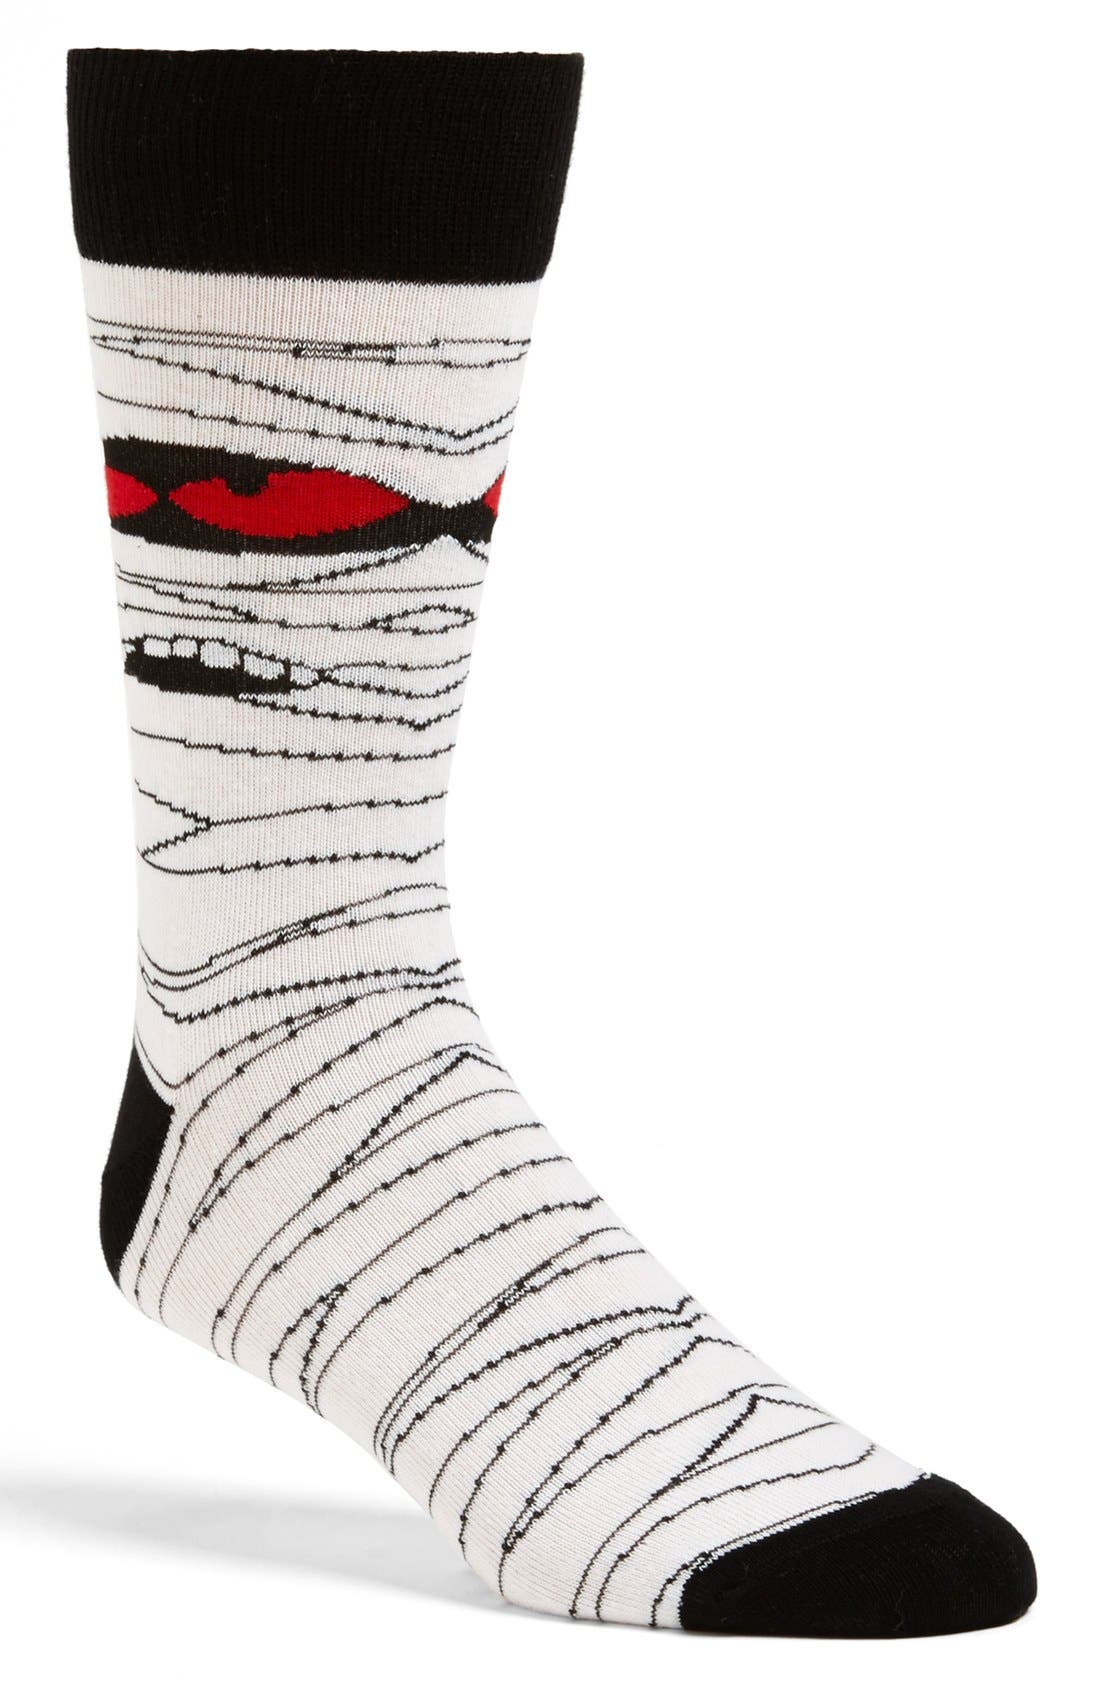 TOPMAN Mummy Bandage Face Socks, Main, color, 100